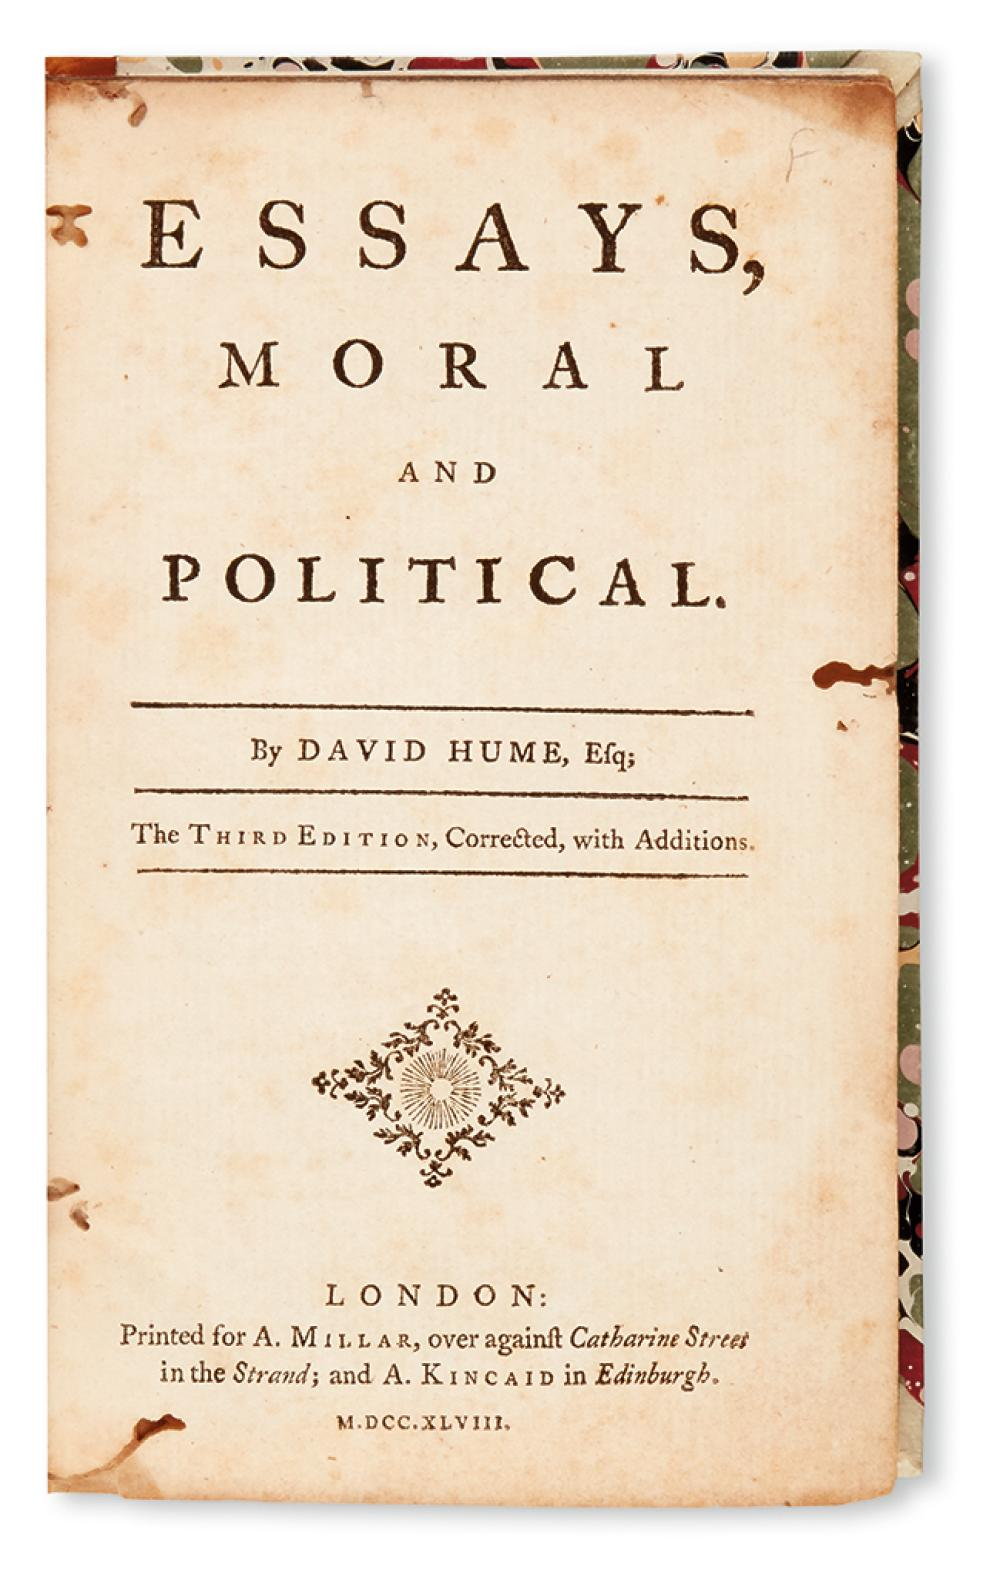 david hume essays moral political and literary sparknotes This edition contains the thirty-nine essays included in essays, moral, political, and literary that made up volume i of the 1777 posthumous essays and treatises on several subjects it also includes ten essays that were withdrawn or left unpublished by hume for various reasons .